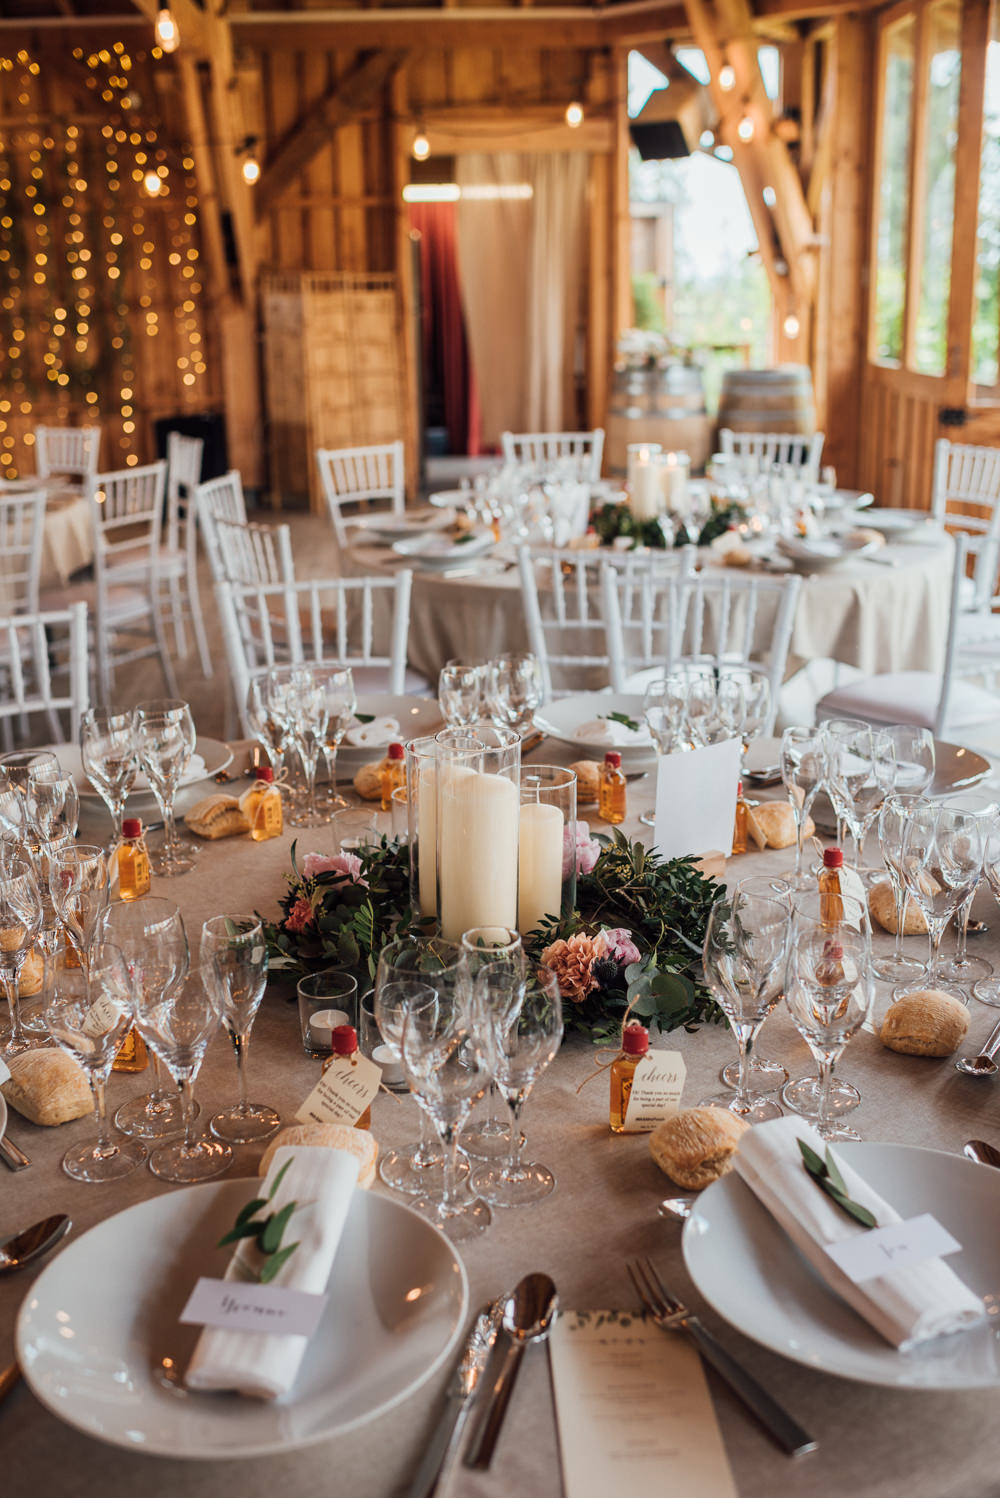 Table Centrepiece Decor Candles Wreath France Destination Wedding The Shannons Photography